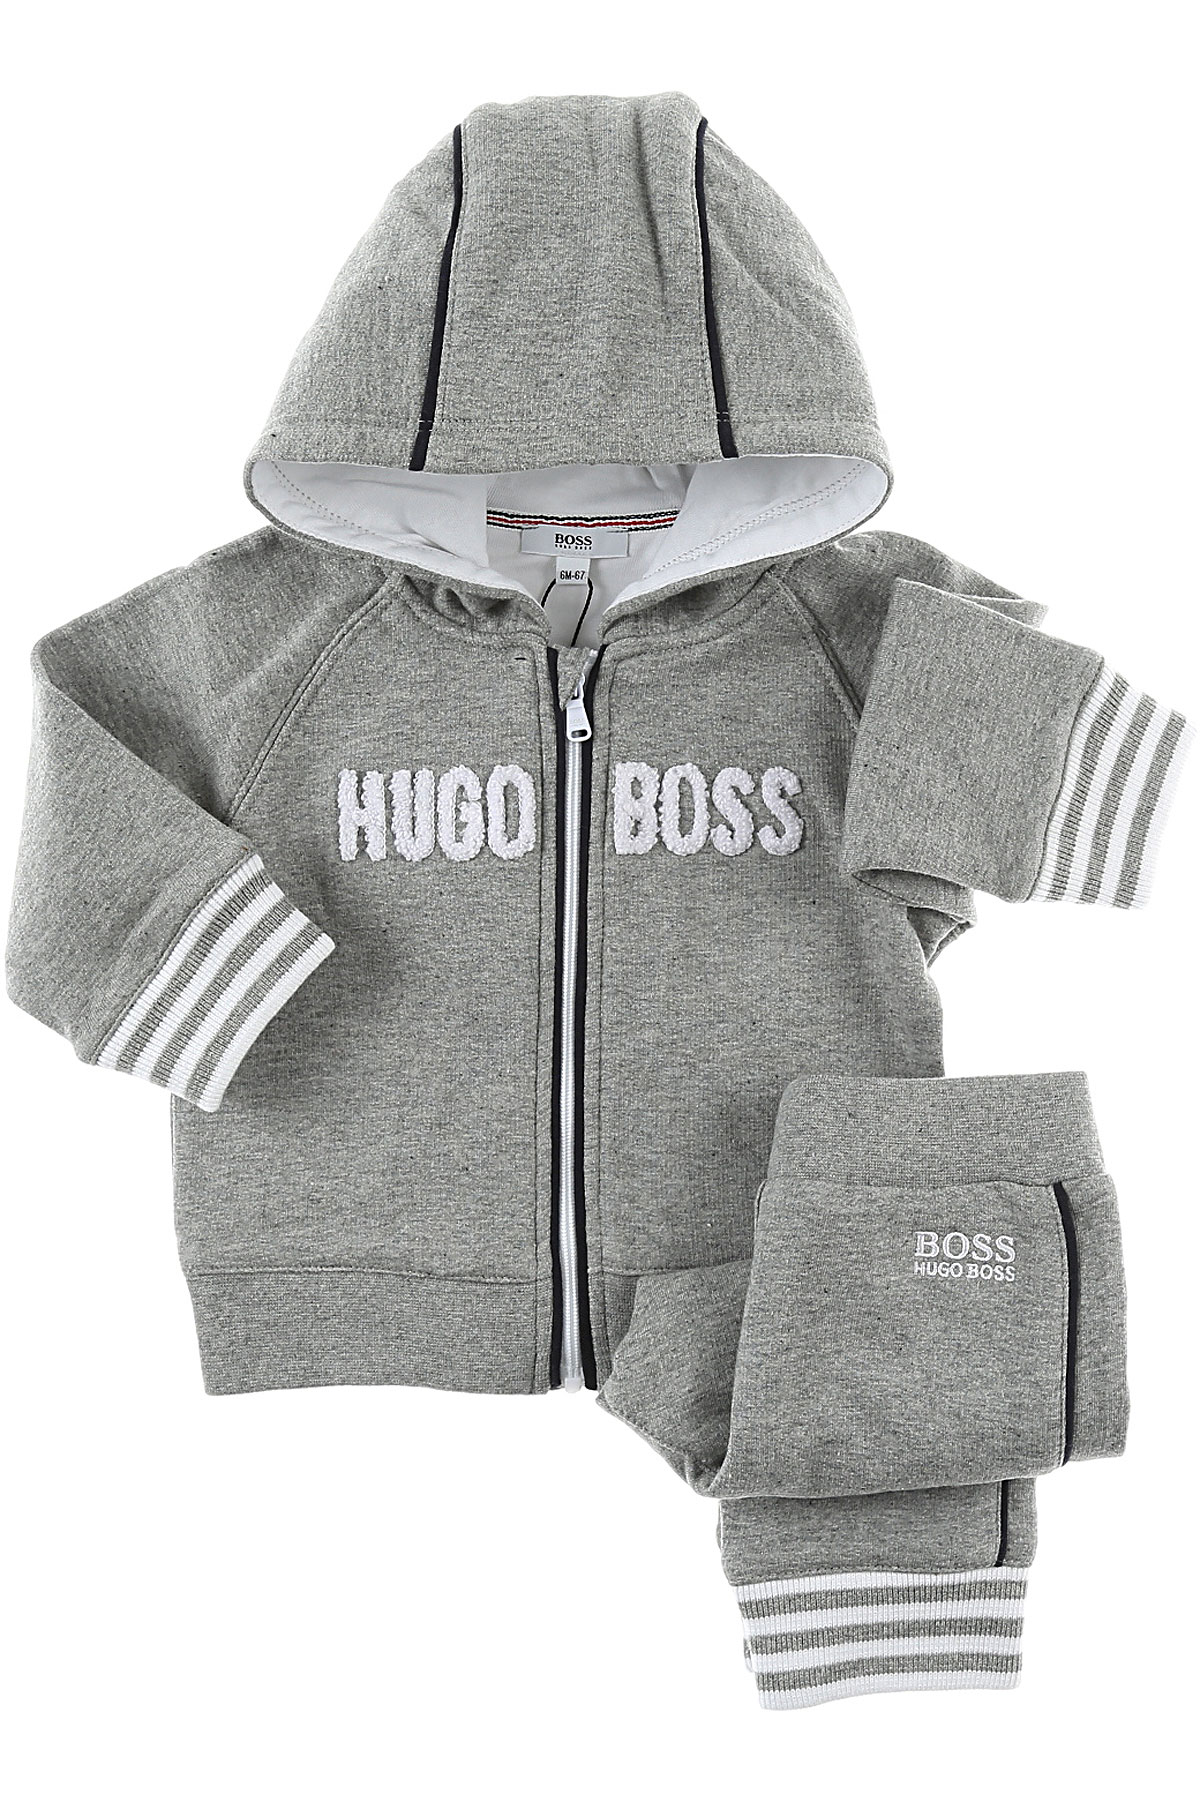 Image of Hugo Boss Baby Sets for Boys, Grey, Cotton, 2017, 12M 9M